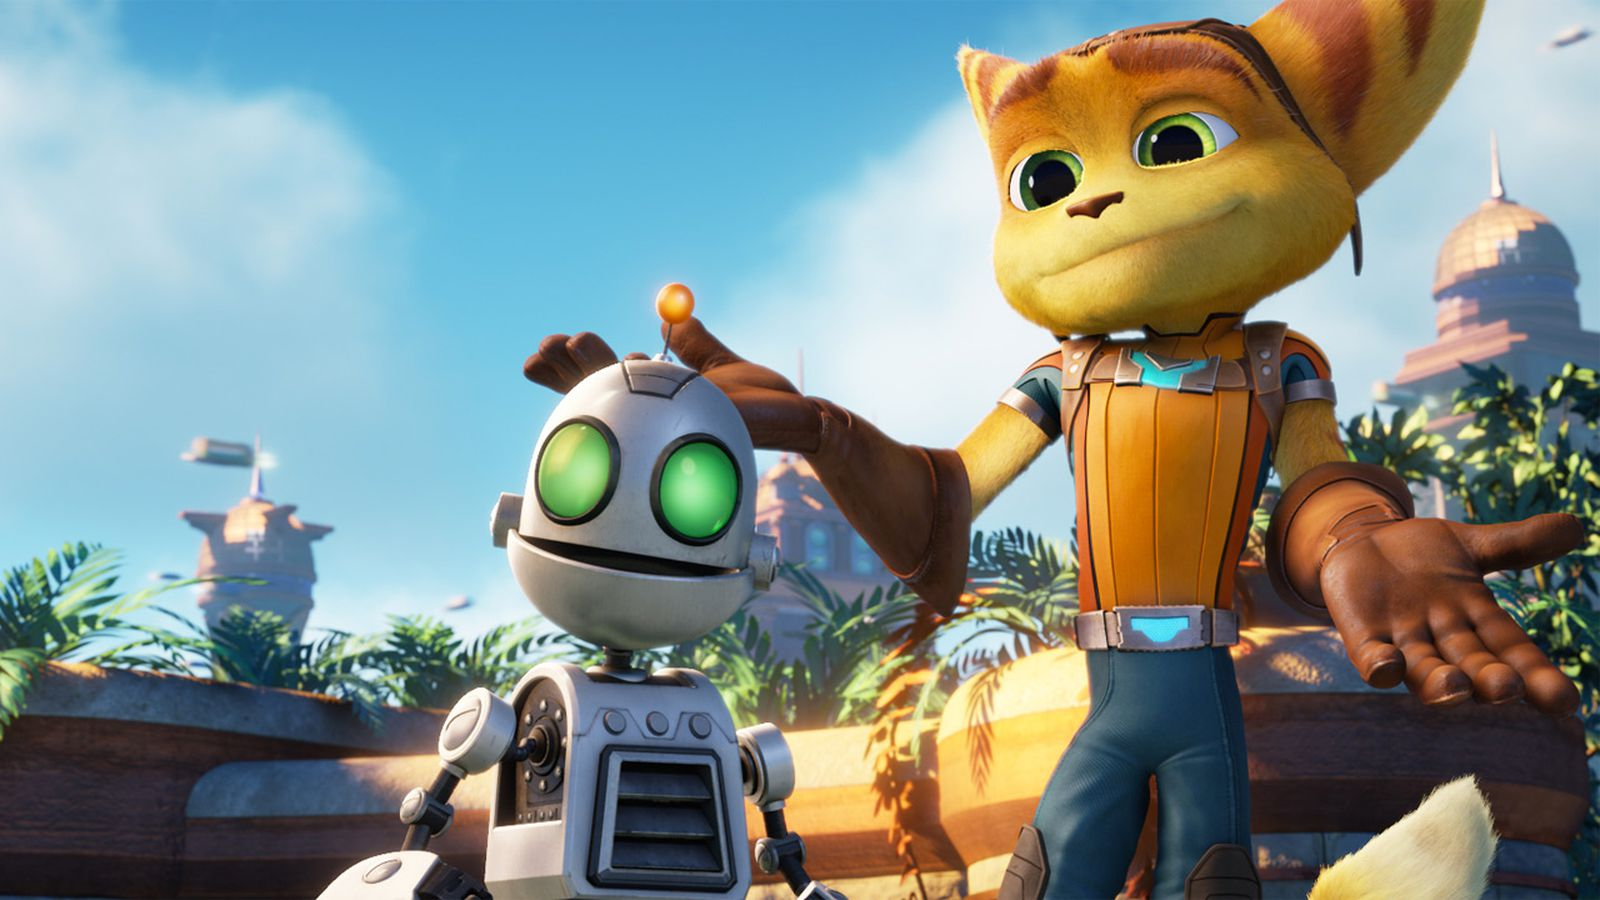 Ratchet Amp Clank For PlayStation 4 Now Coming Spring 2016 Polygon